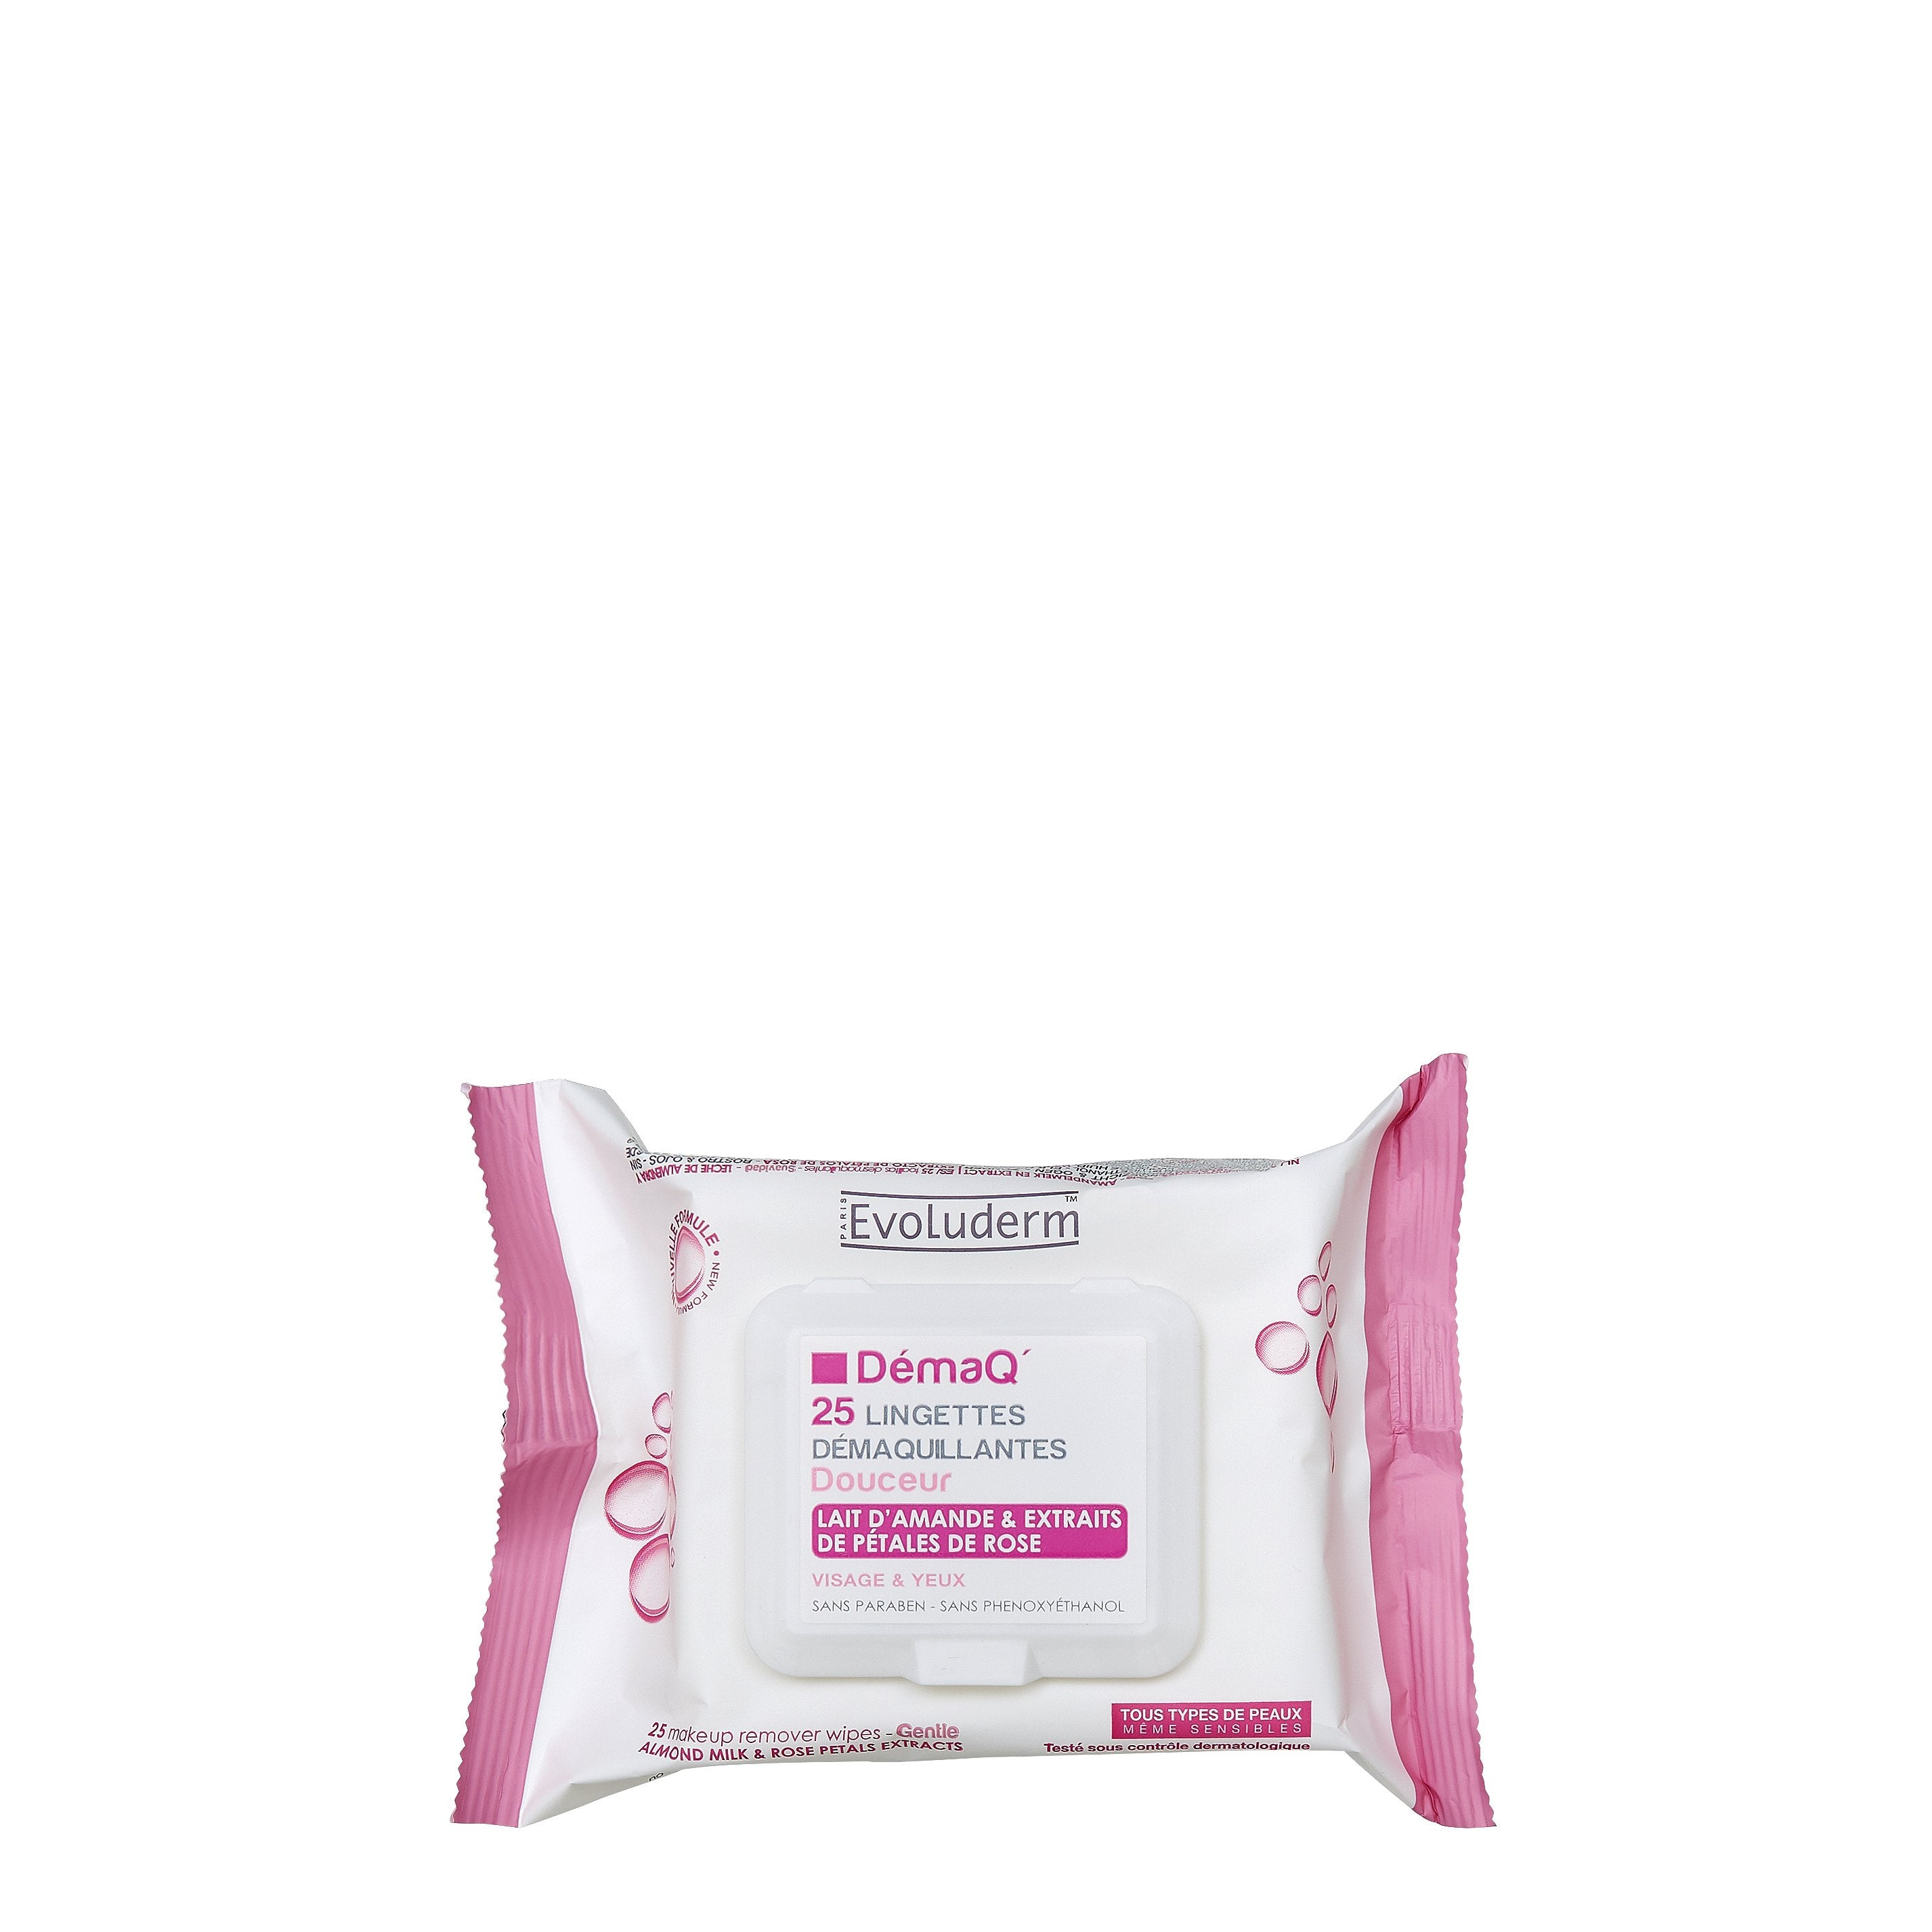 Make-Up Remover Wipes with Rose Petal Extracts